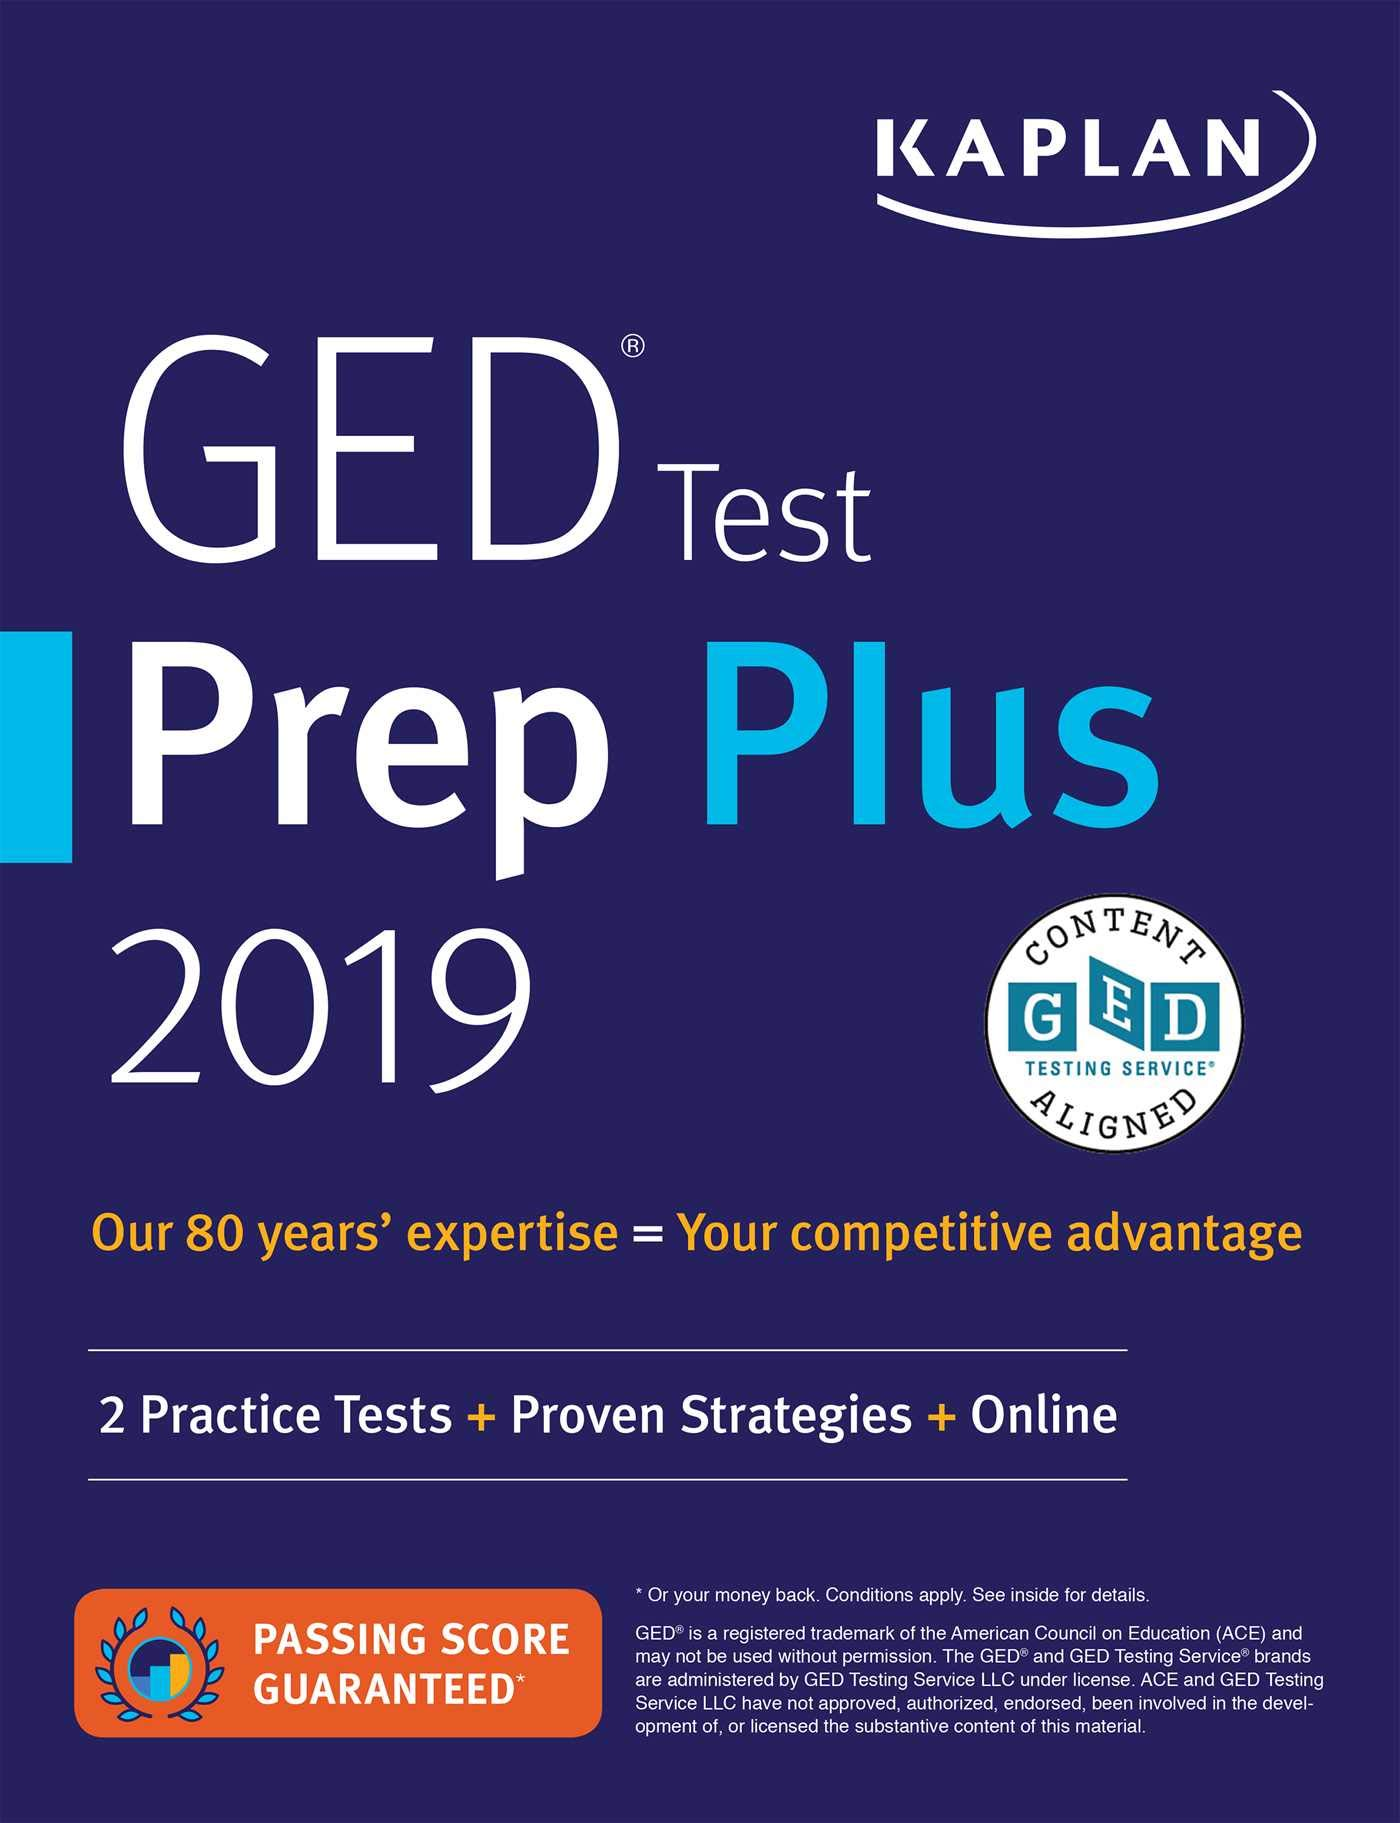 GED Test Prep Plus 2019: 2 Practice Tests + Proven